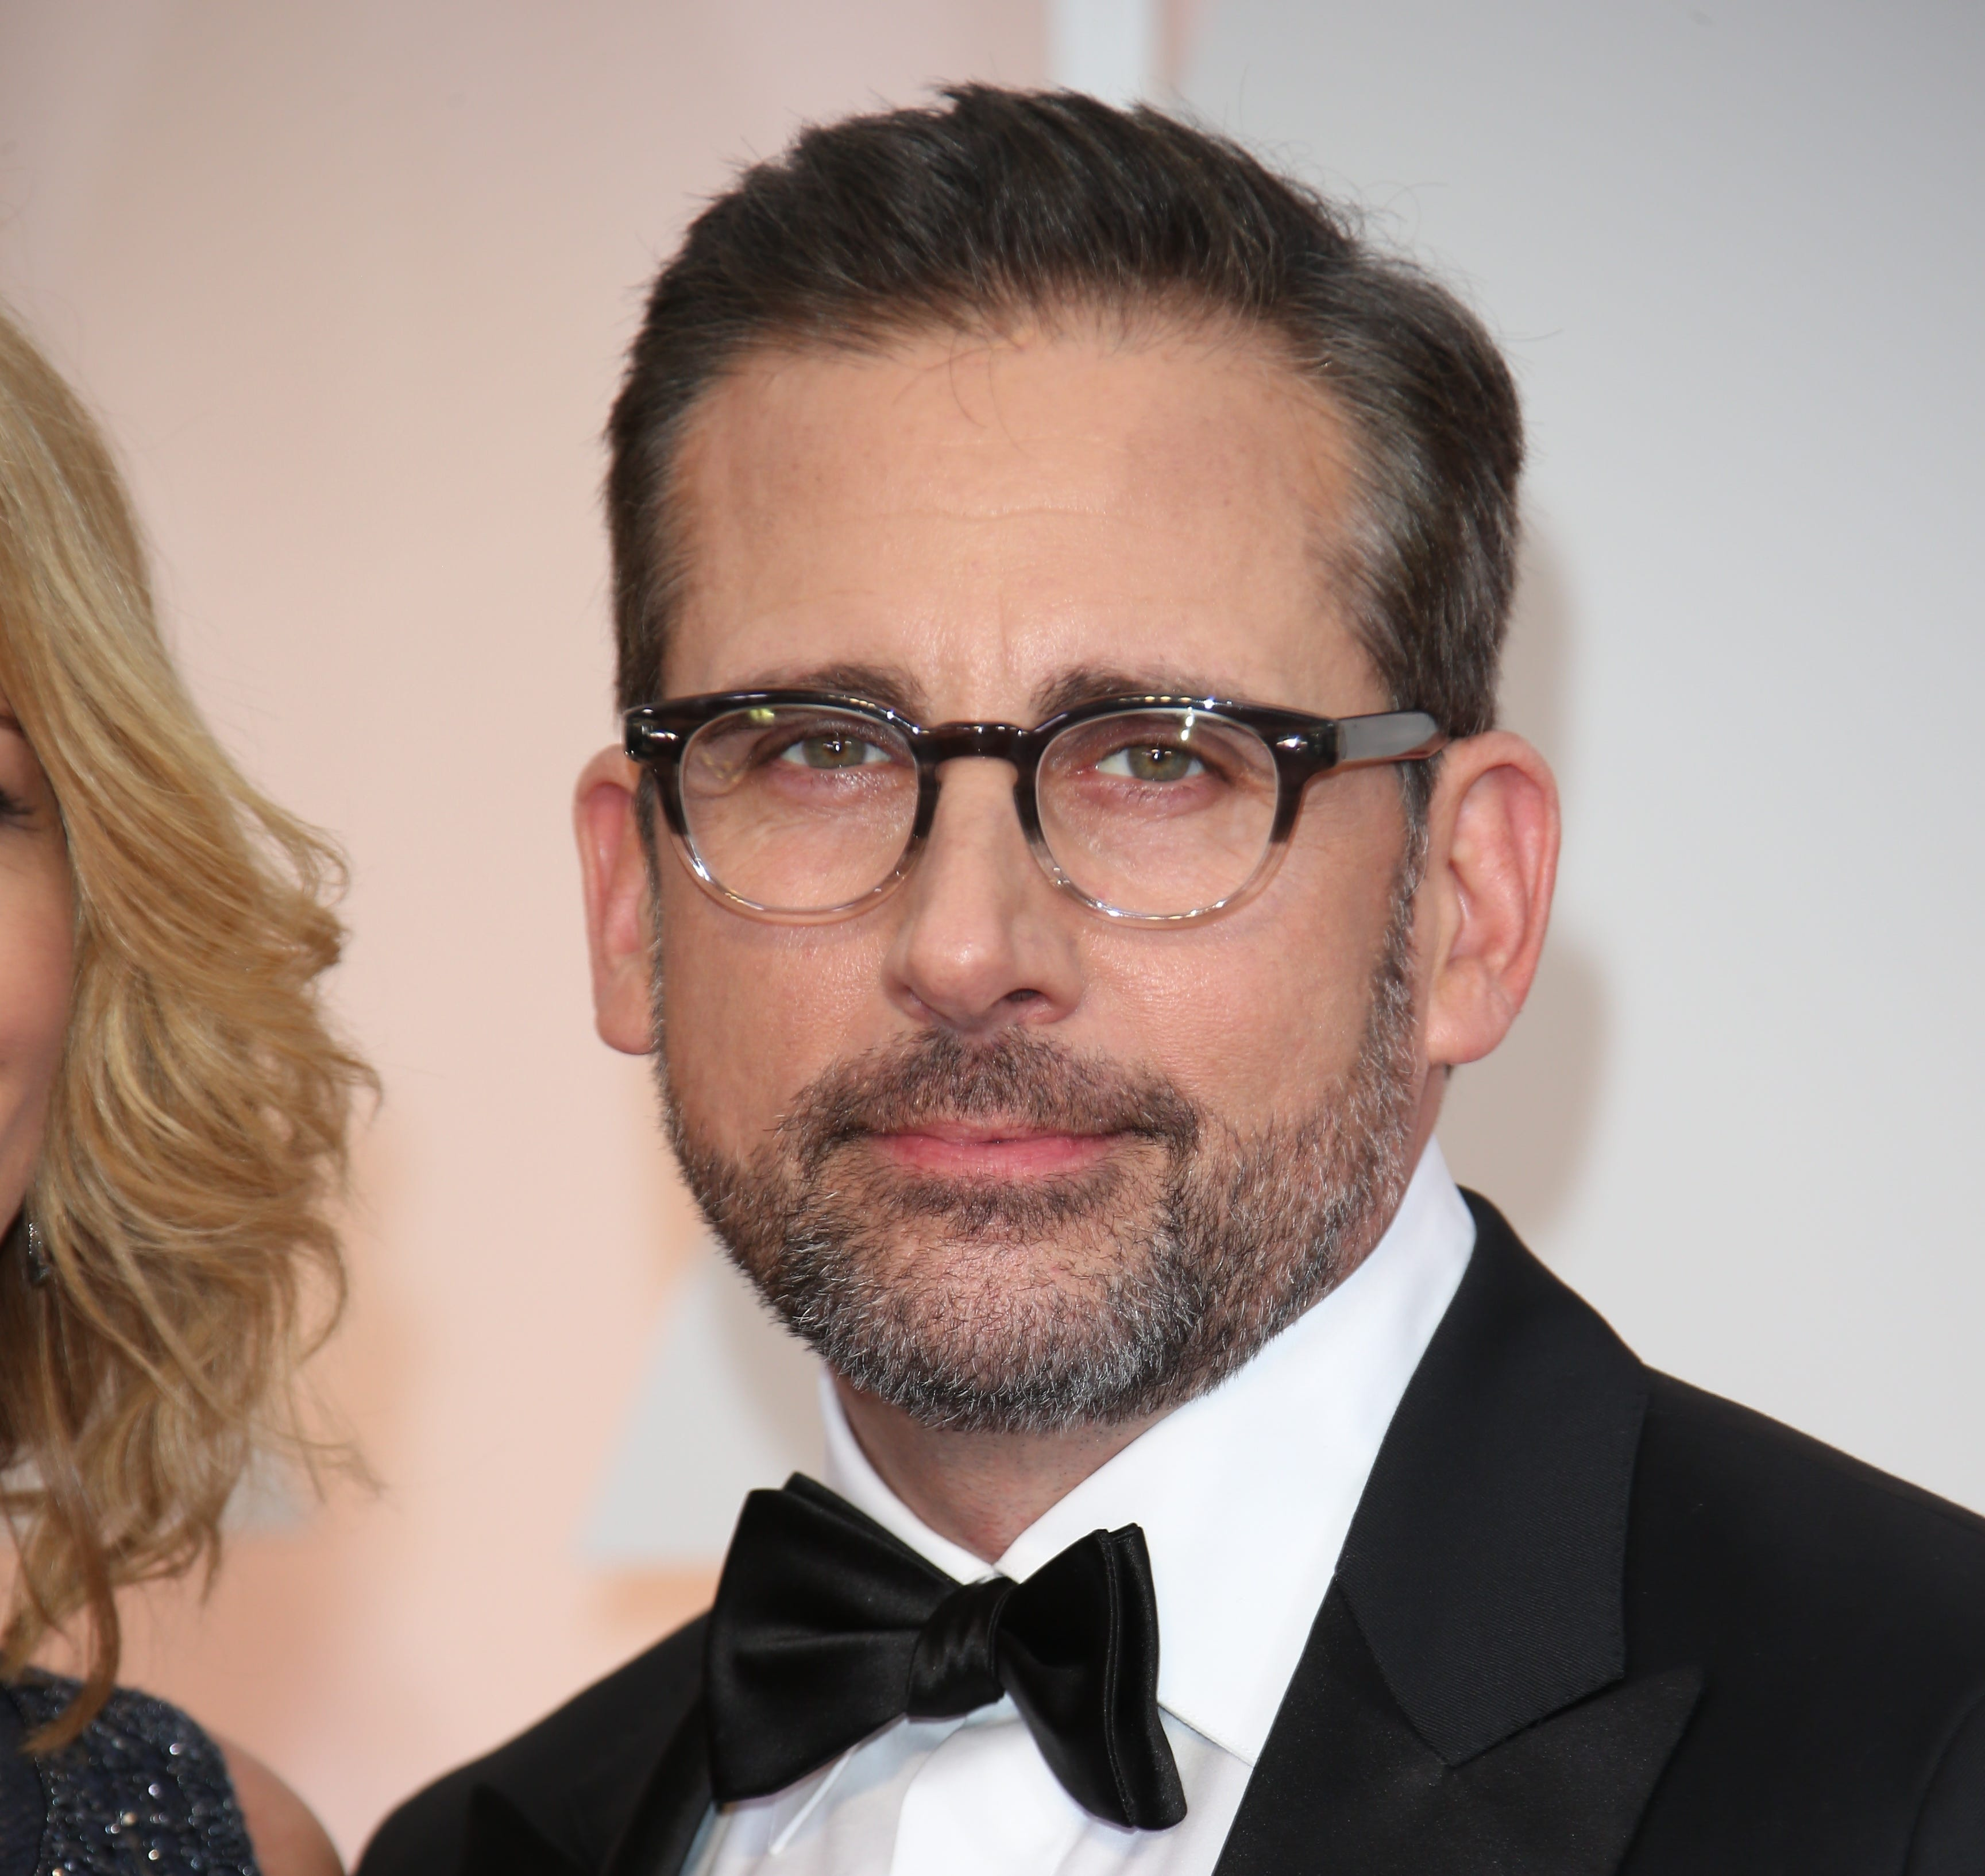 Steve Carell arrives at the 87th annual Academy Awards at the Dolby Theatre.